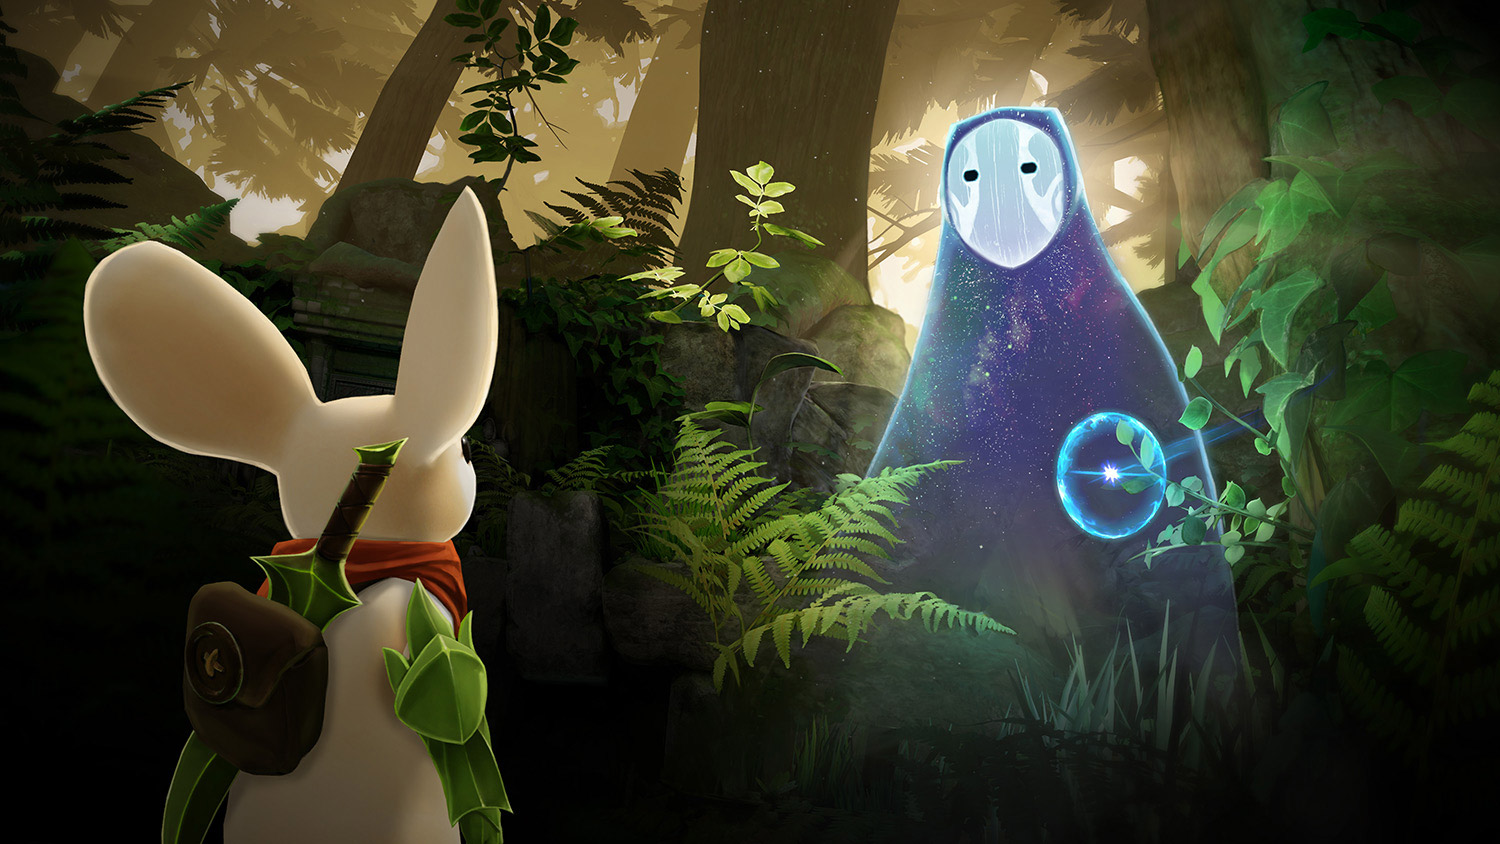 Moss Review (PSVR) – The Opening Chapter of an Adorable Adventurer